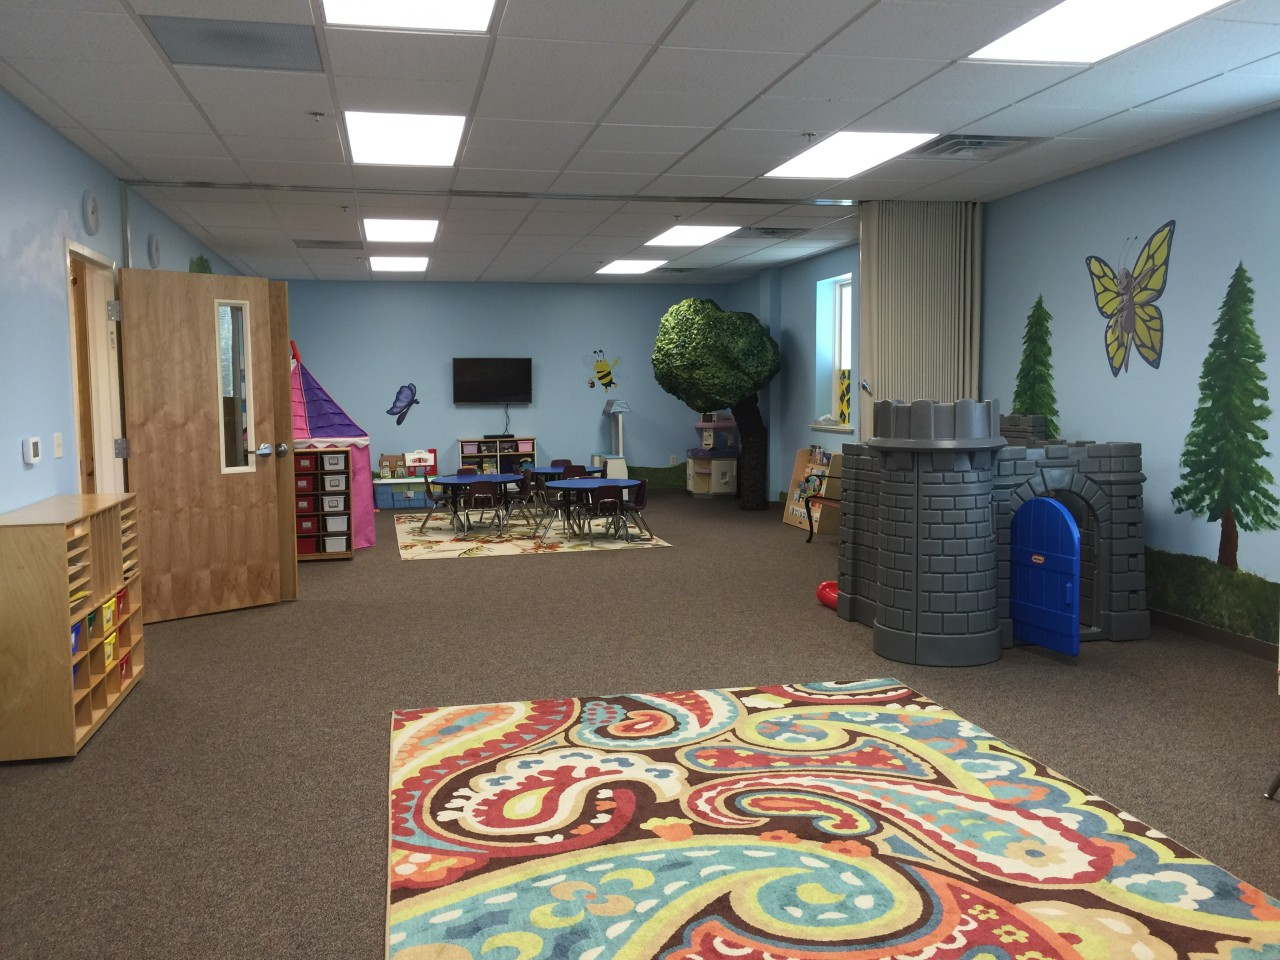 Our Toddler Room!